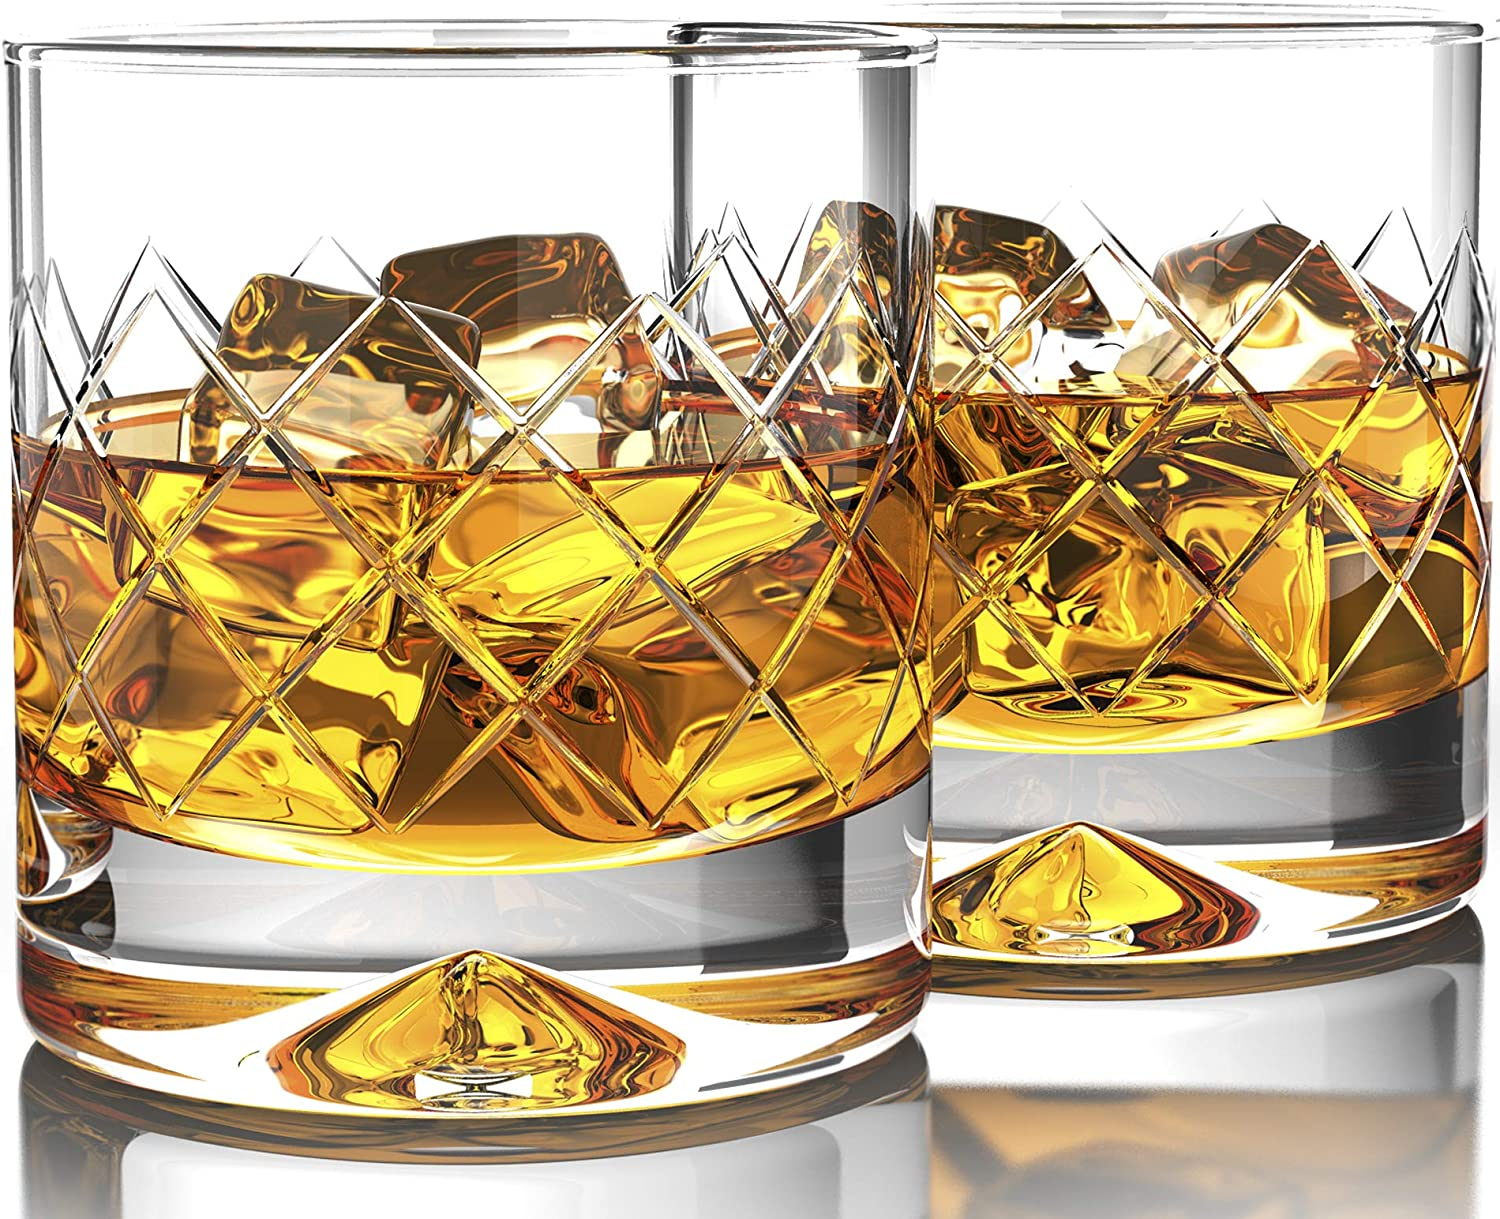 Amazon Com Mofado Crystal Whiskey Glasses Diamondetch 12oz Set Of 2 Hand Blown Crystal Thick Weighted Bottom Rocks Glasses Old Fashioned Glasses